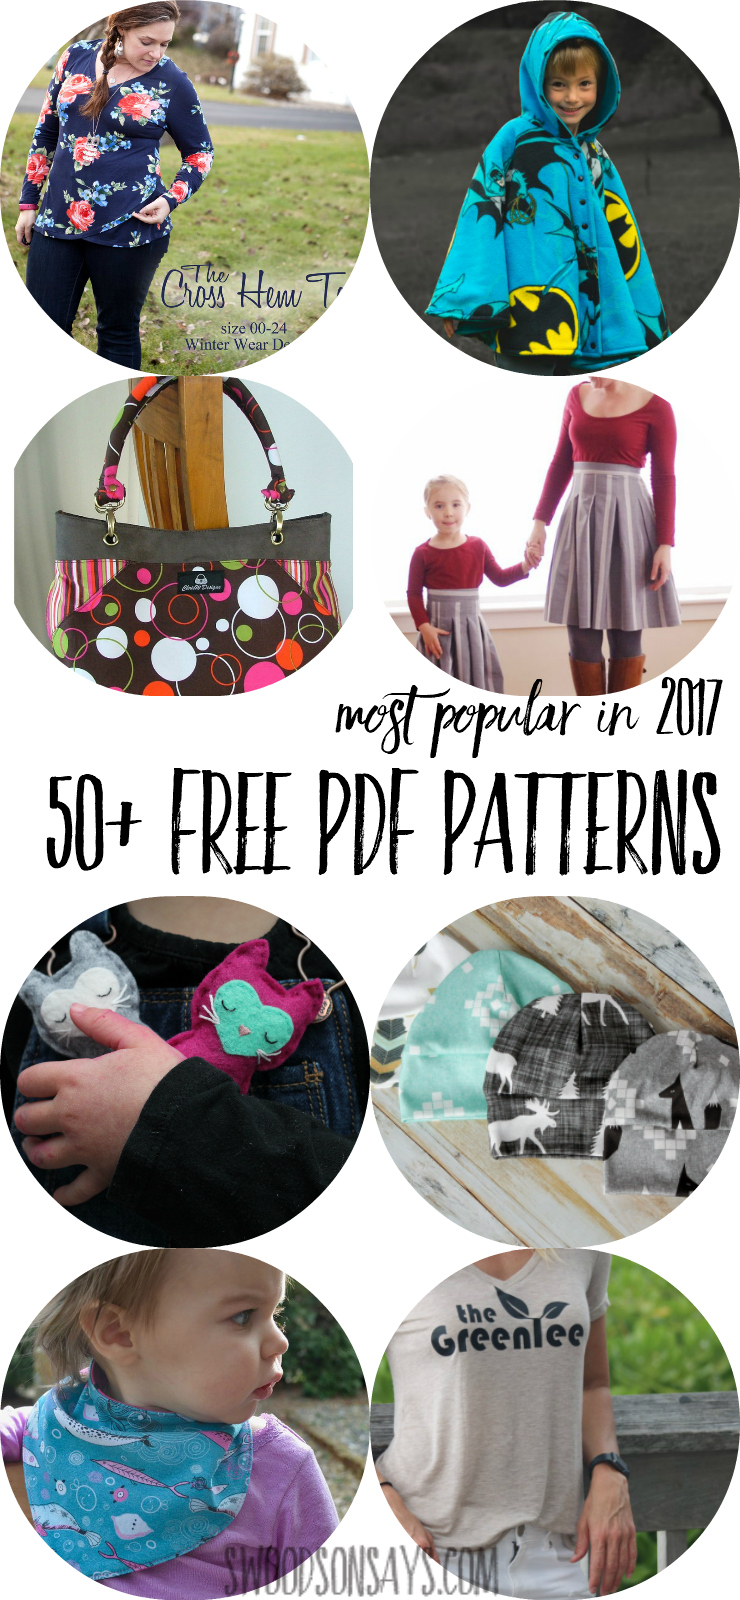 50 most popular free pdf patterns in 2017 swoodson says check out this huge list of free pdf sewing patterns for kids adults home jeuxipadfo Image collections